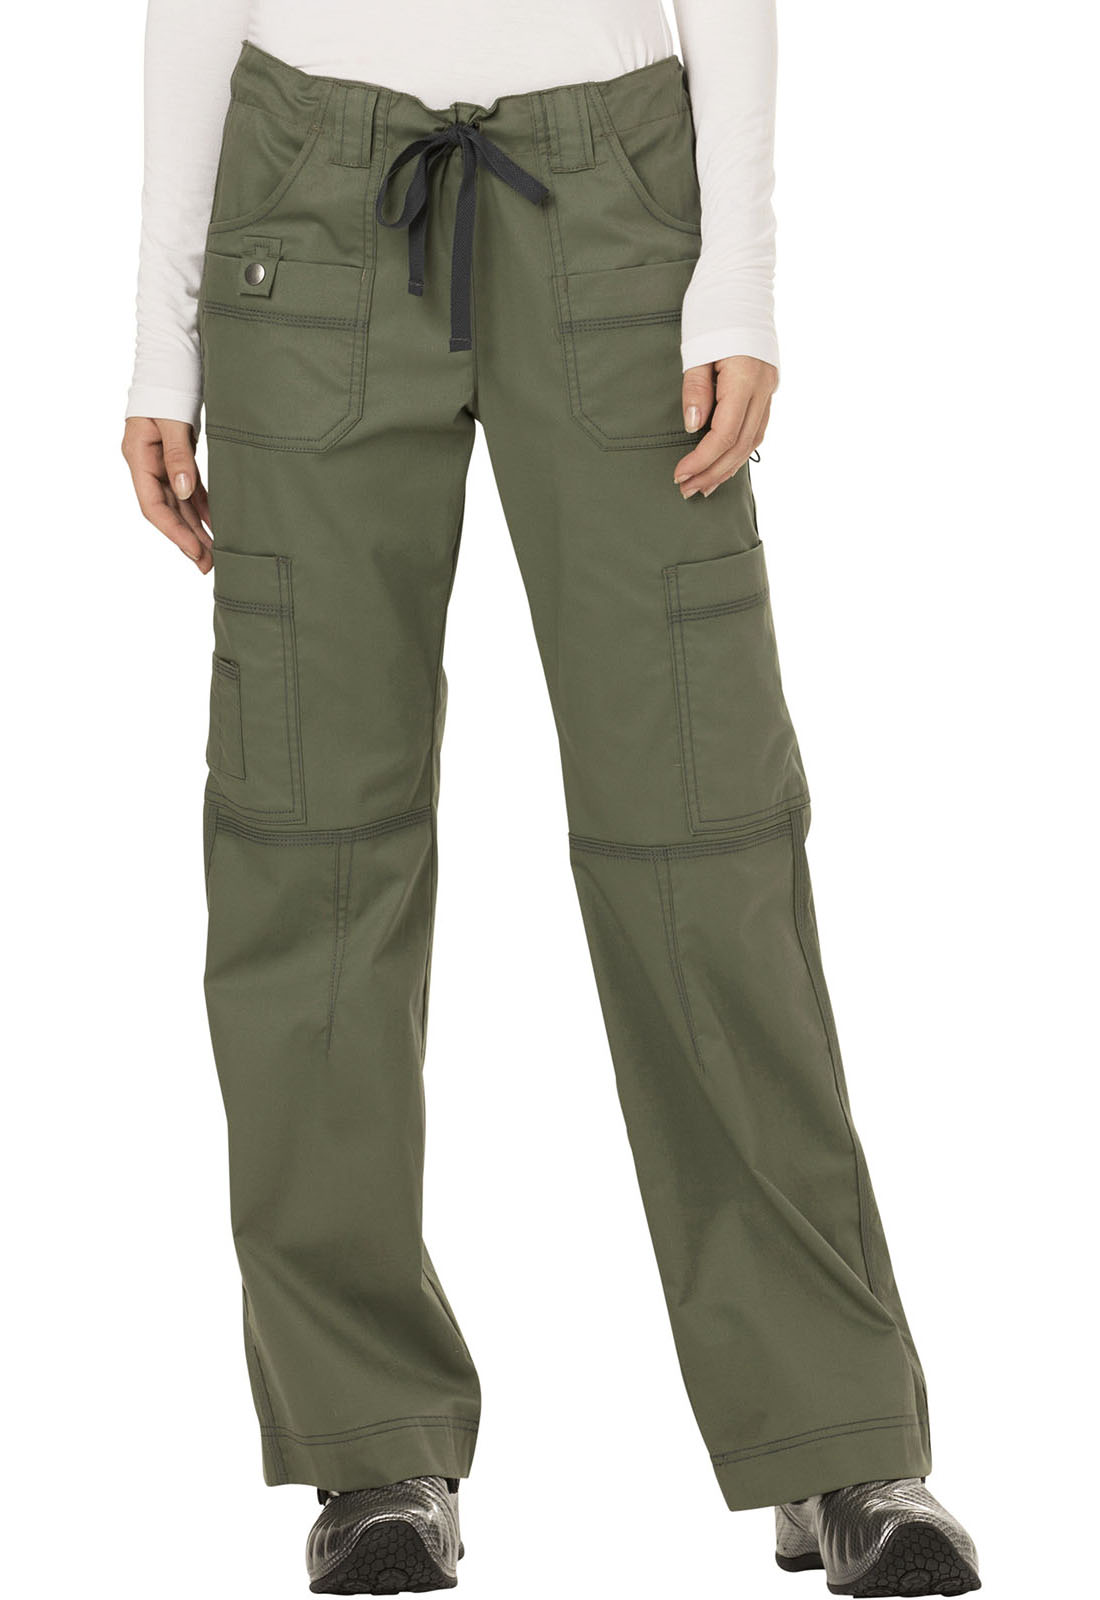 4cafbeda1a9 Dickies Gen Flex Low Rise Drawstring Cargo Pant in Olive from ...